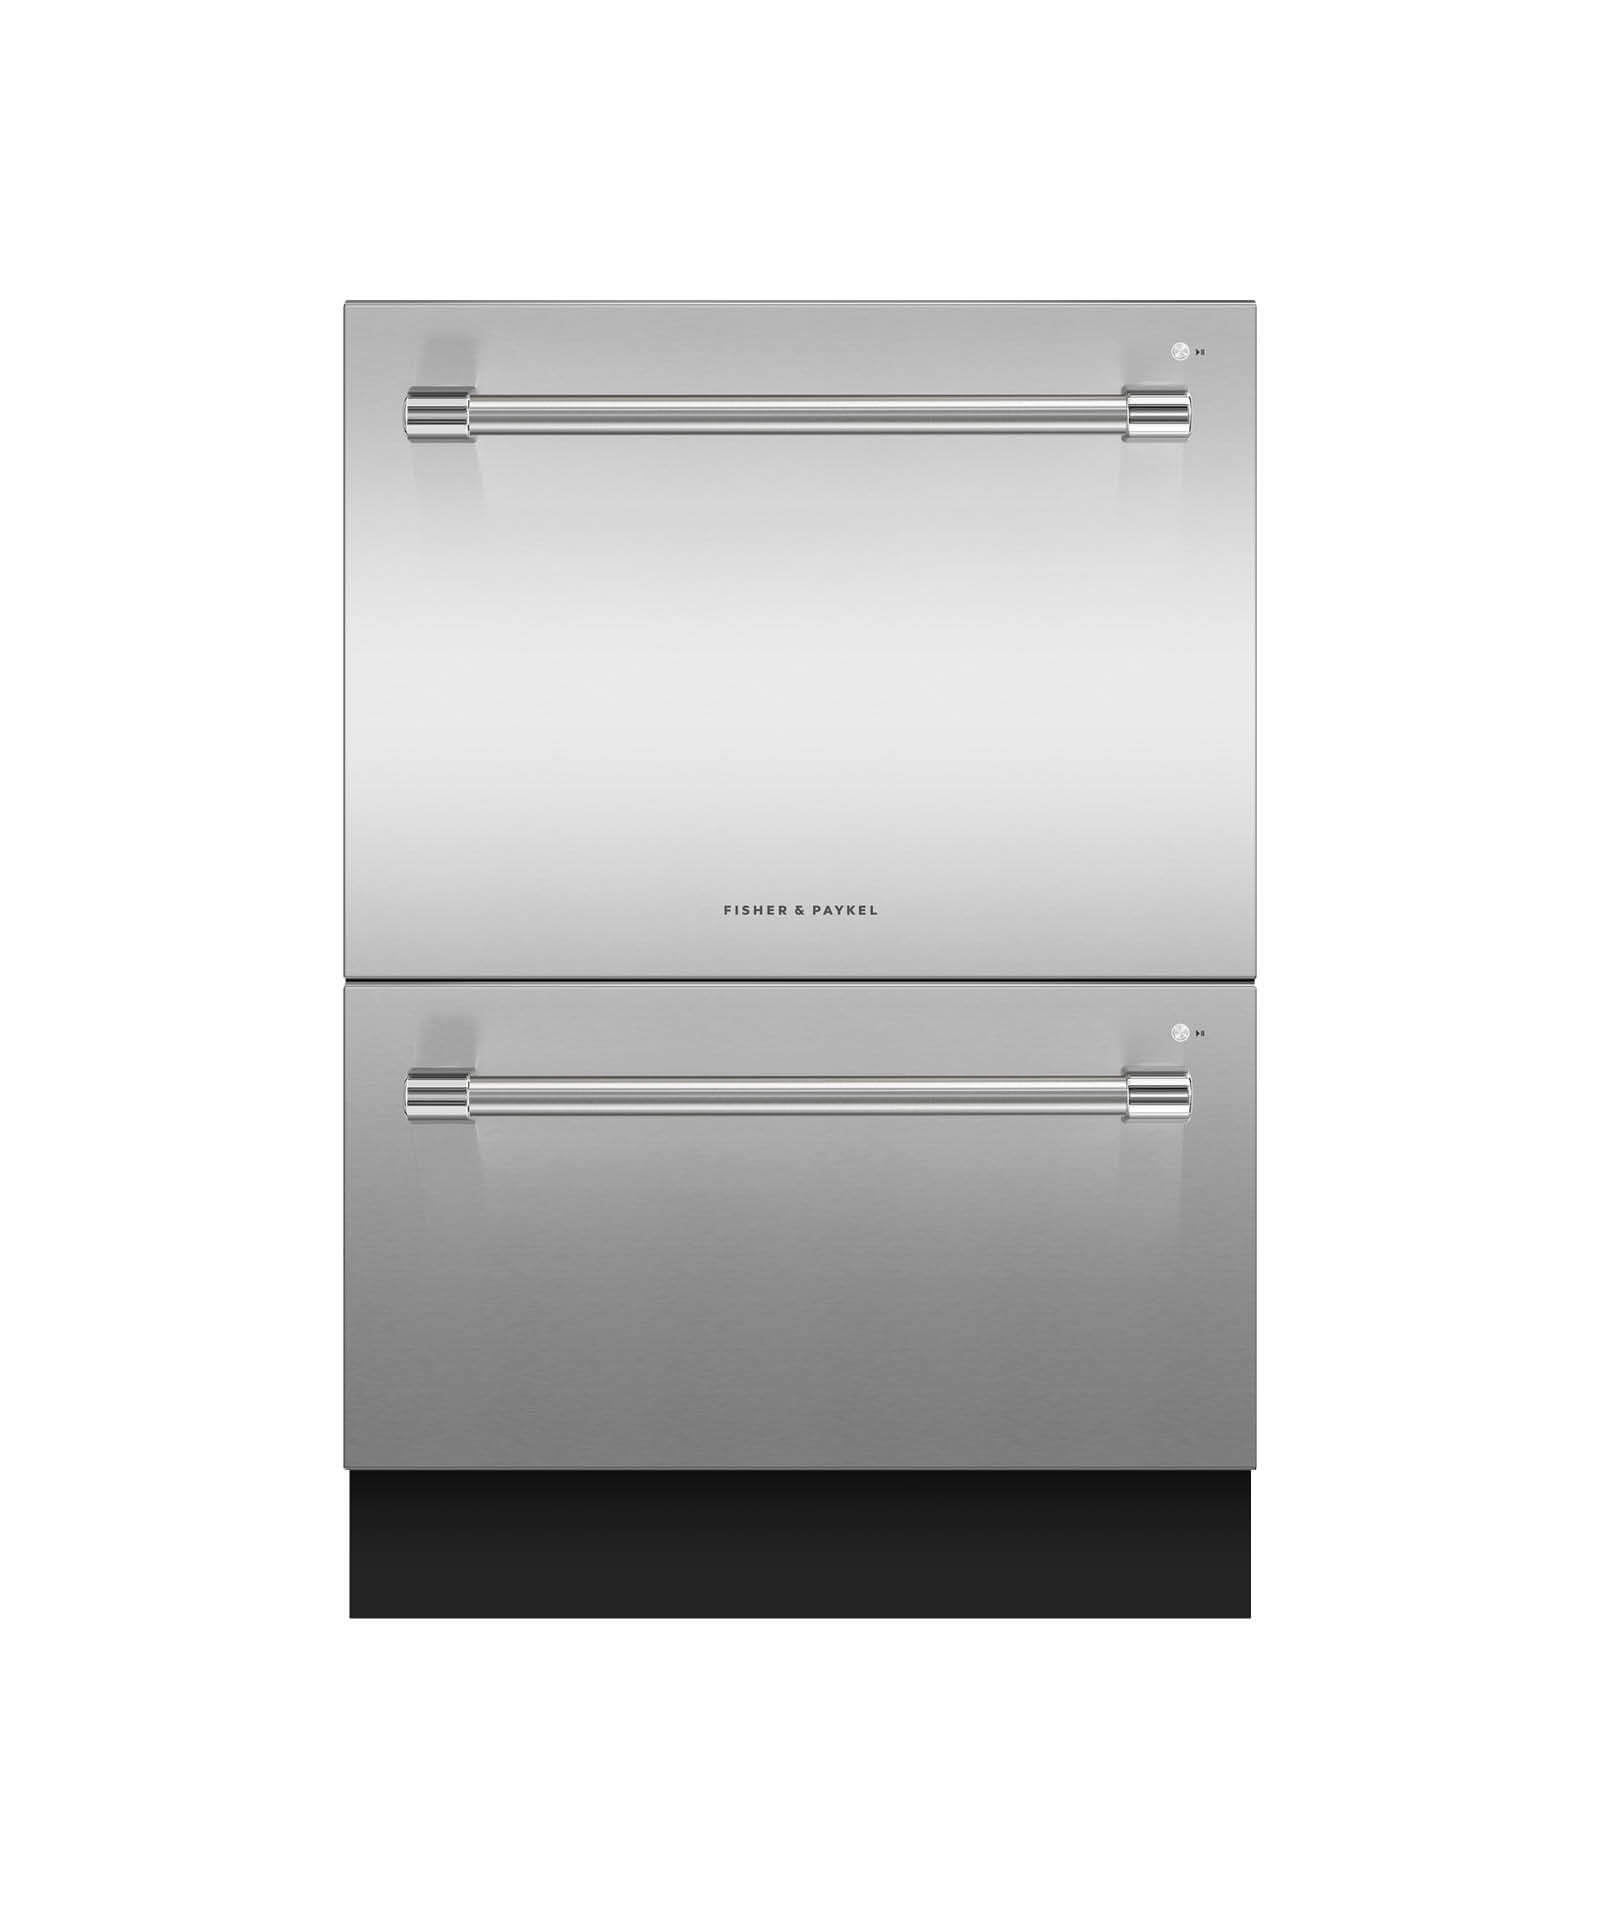 "Fisher and Paykel 24"" Double DishDrawer™ Dishwasher, 14 Place Settings, Sanitize (Tall)"